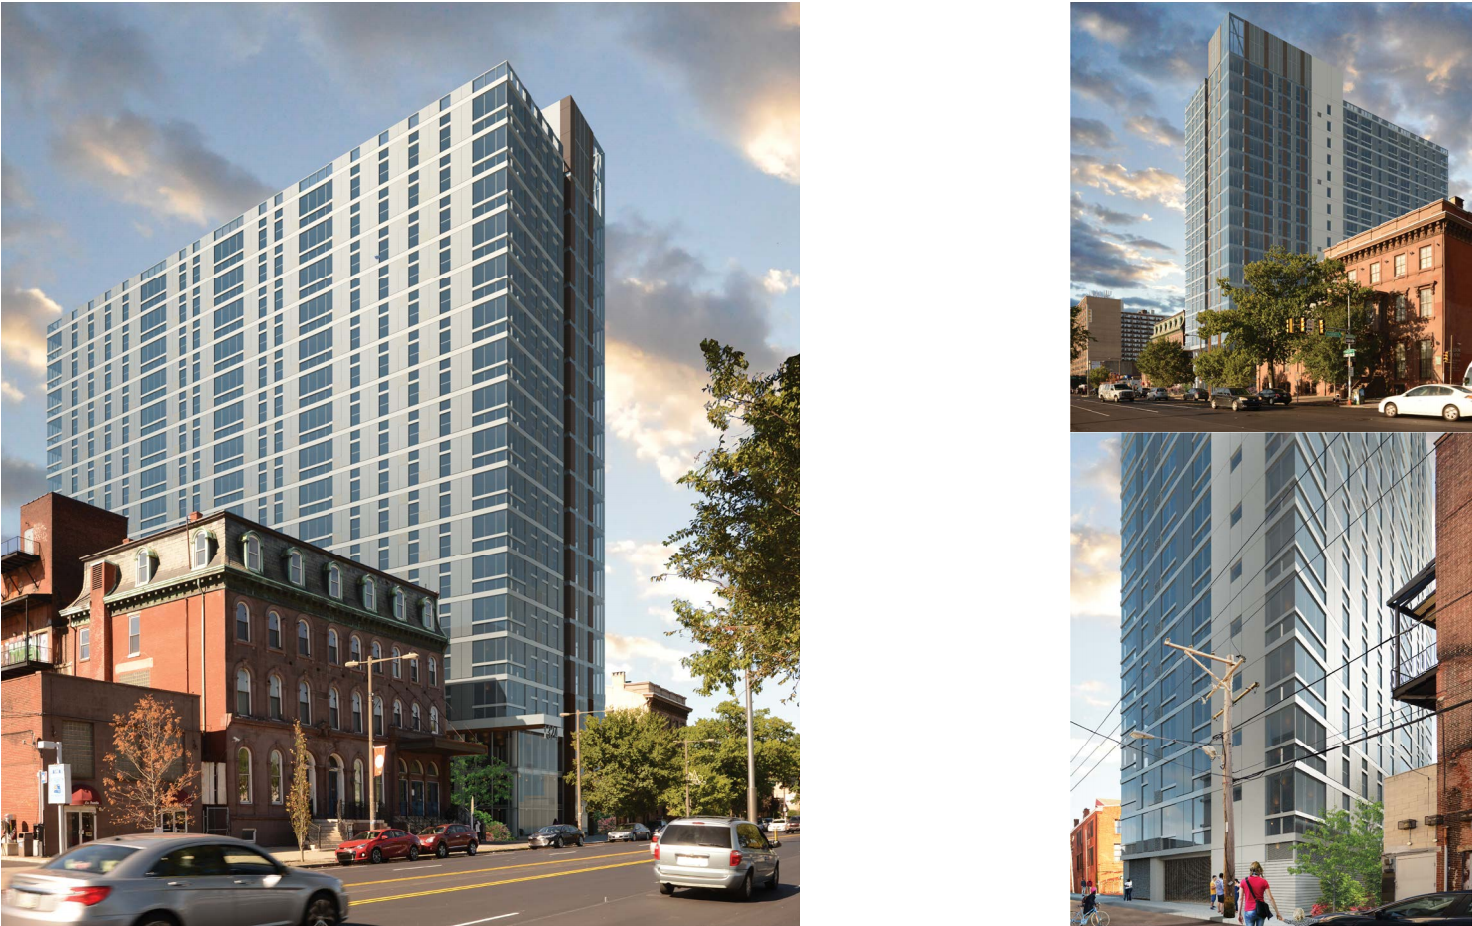 1324 N. Broad: Renderings | Cecil Baker + Partners, Nov. 2016 CDR presentation